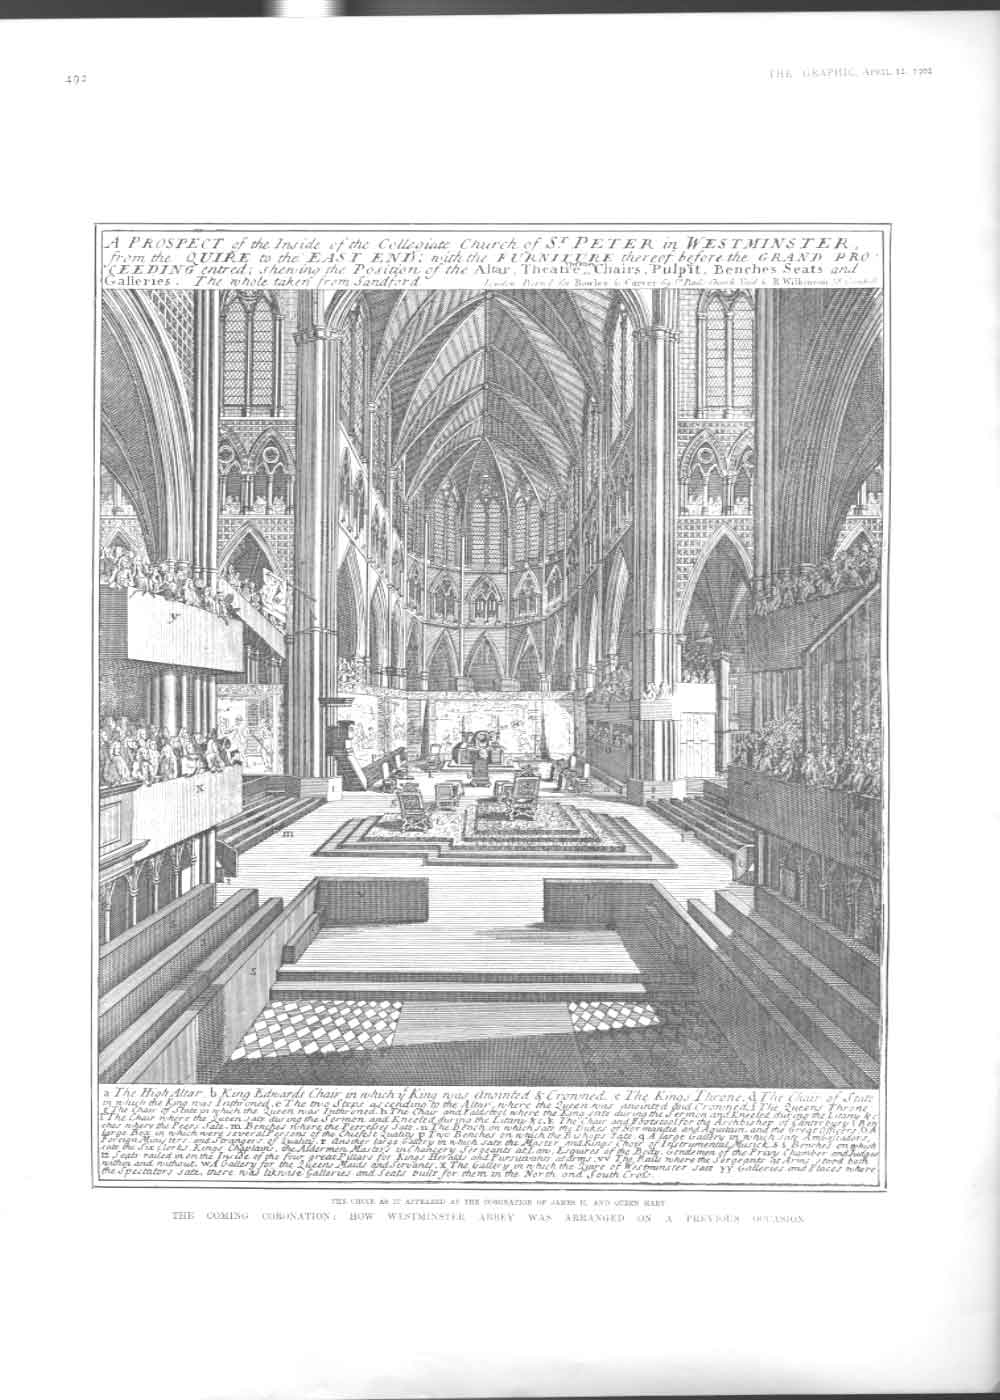 [Print How Westminister Was Arranged On Previous Coronation 249Aa416 Old Original]